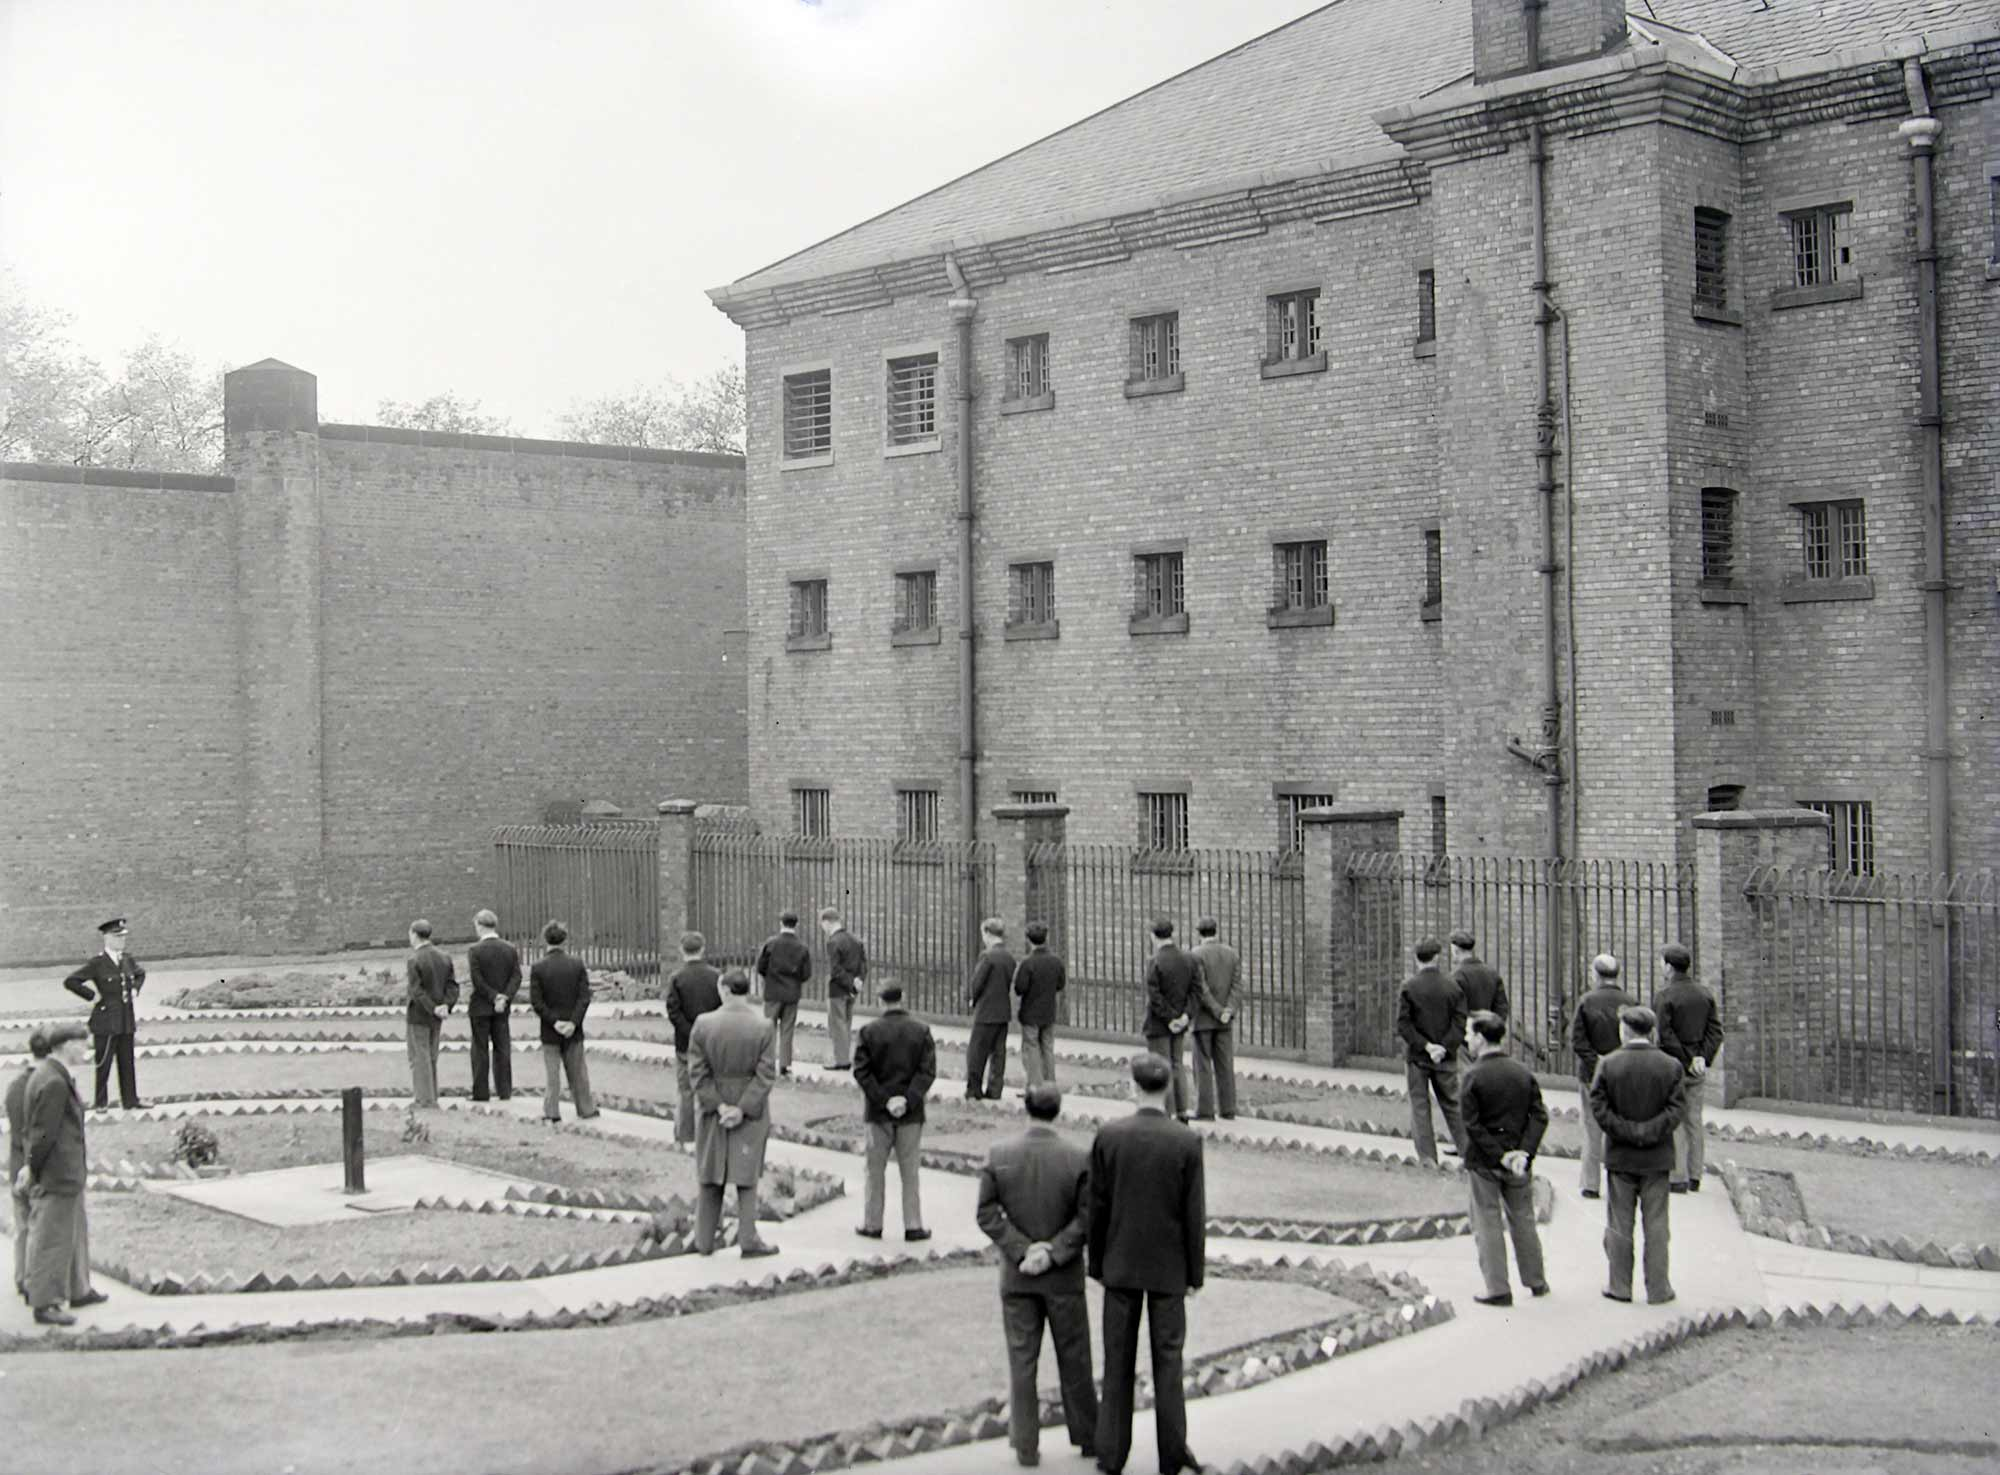 HM Prison Leicester exercise yard, mid-20th Century - Leicester and Leicestershire Record Office